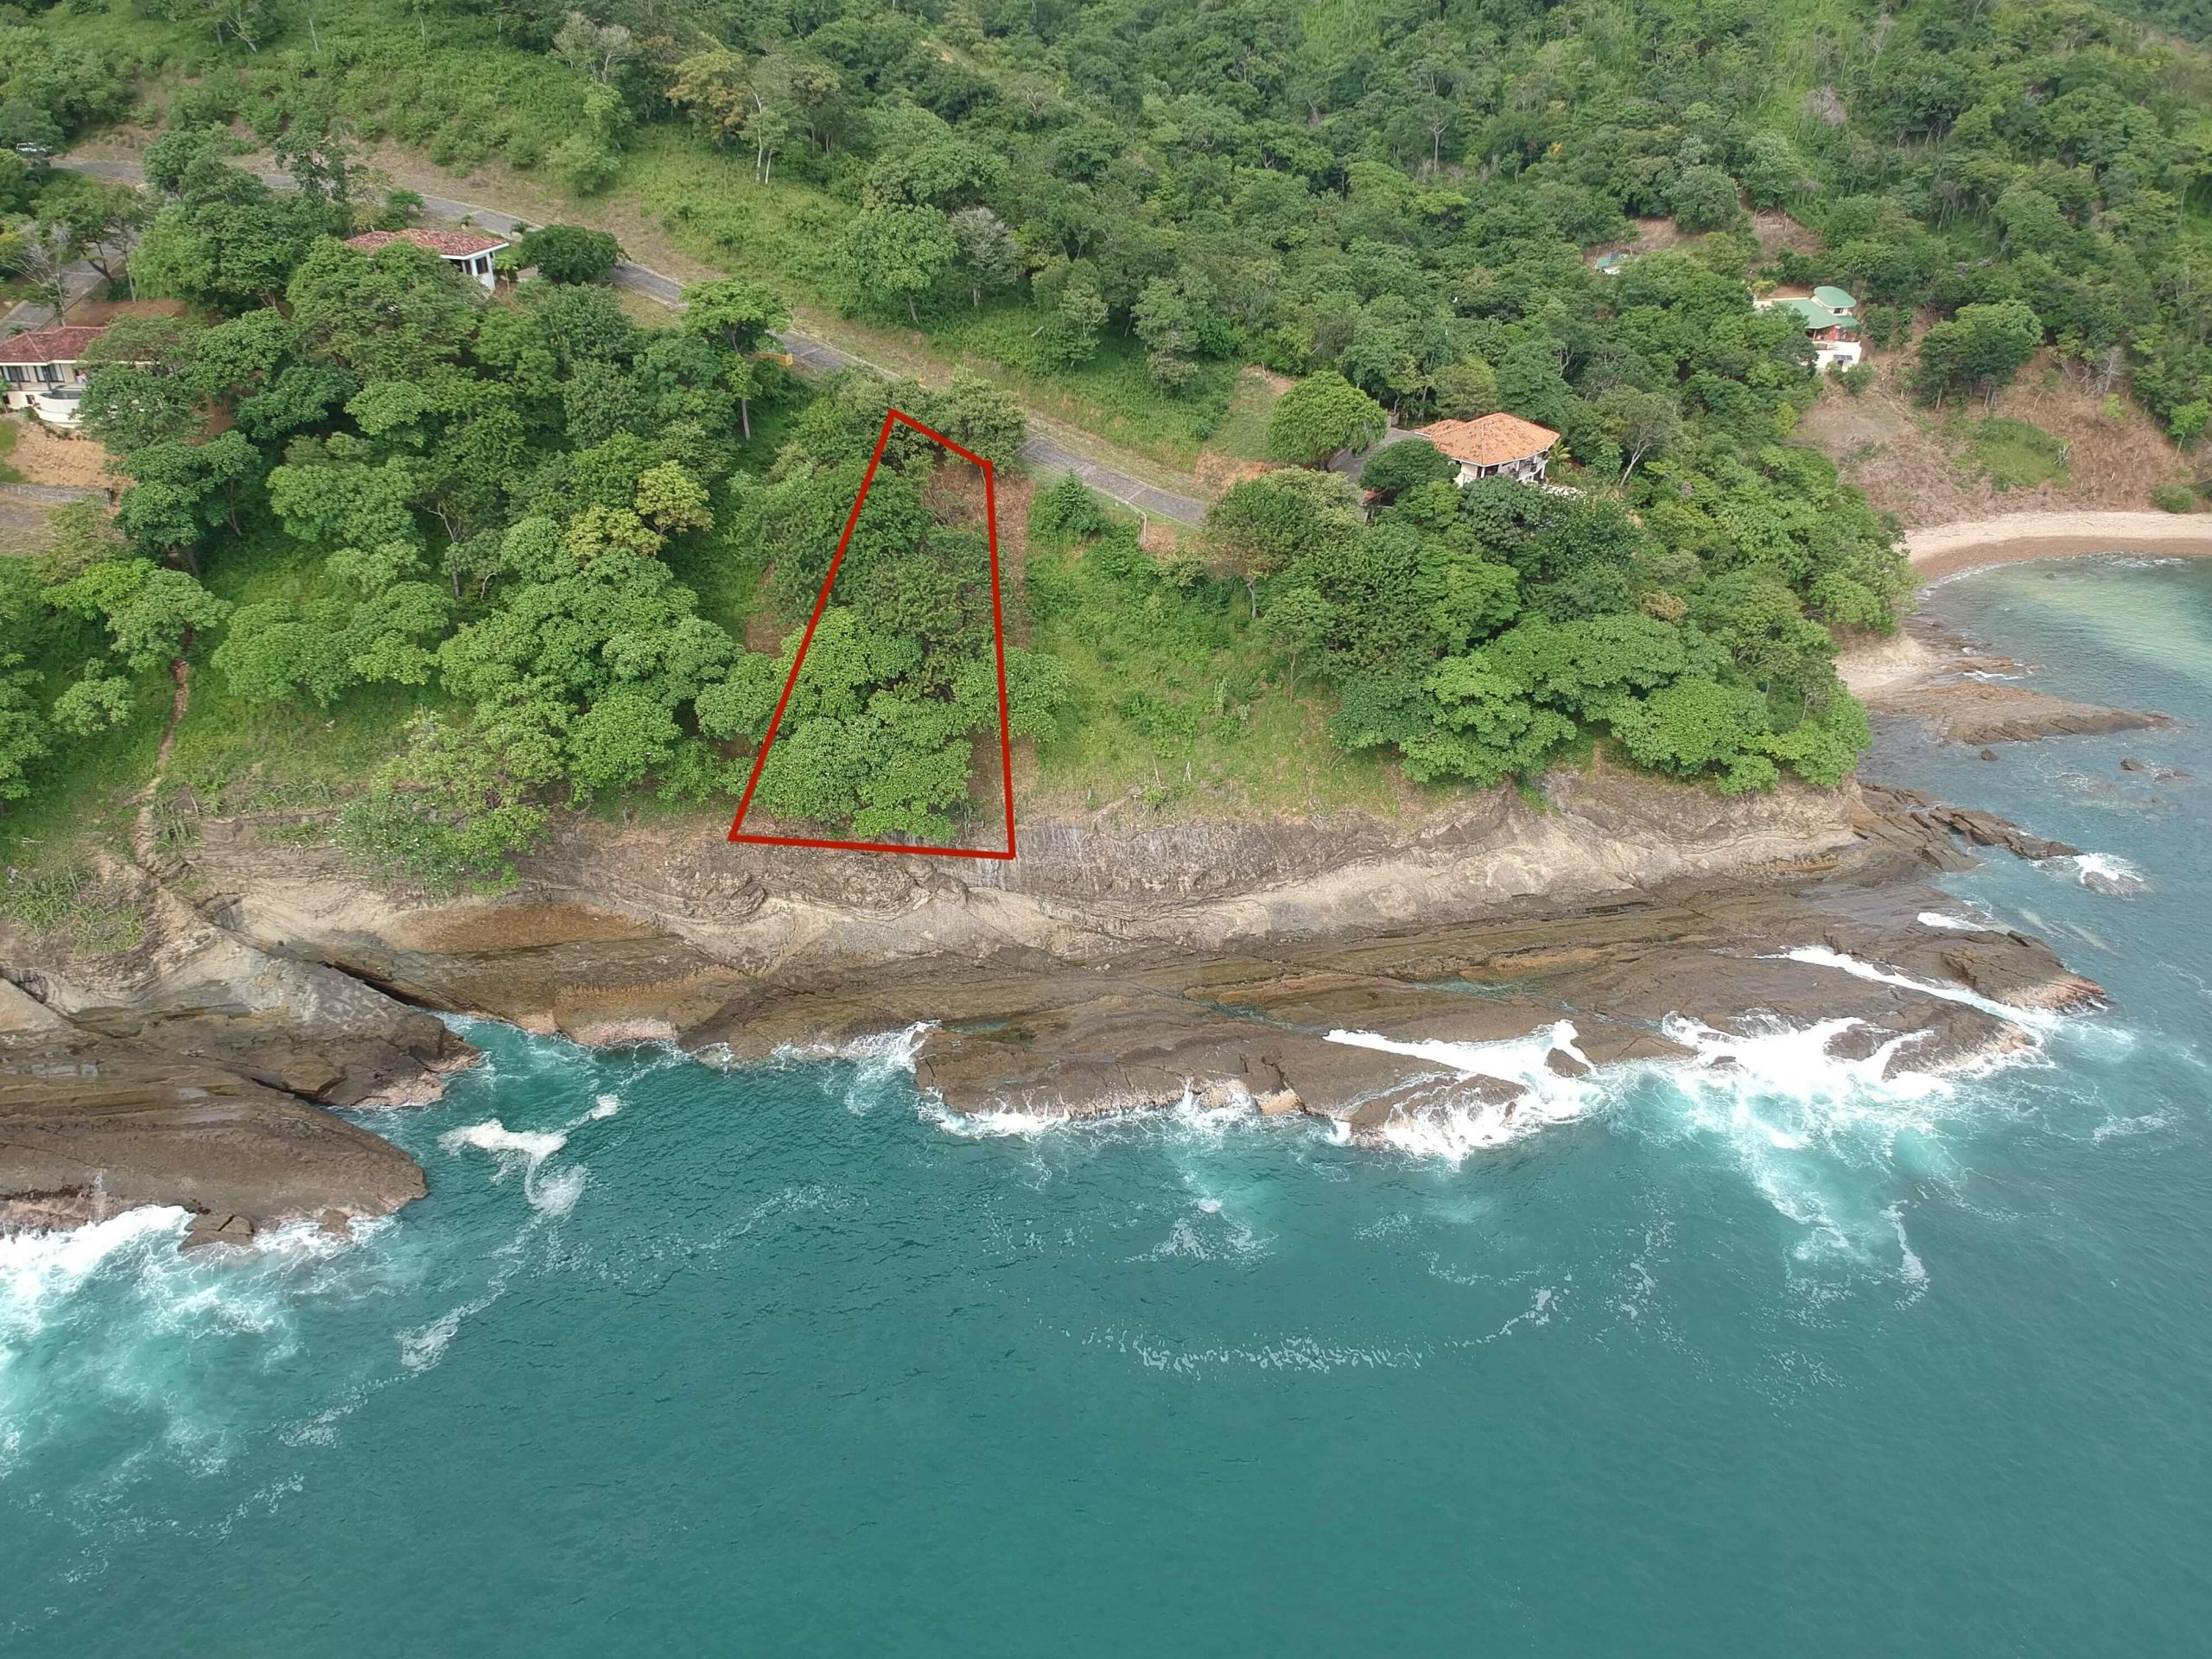 Ocean Front Fire Sale Lot Reduced from $395k to $140k